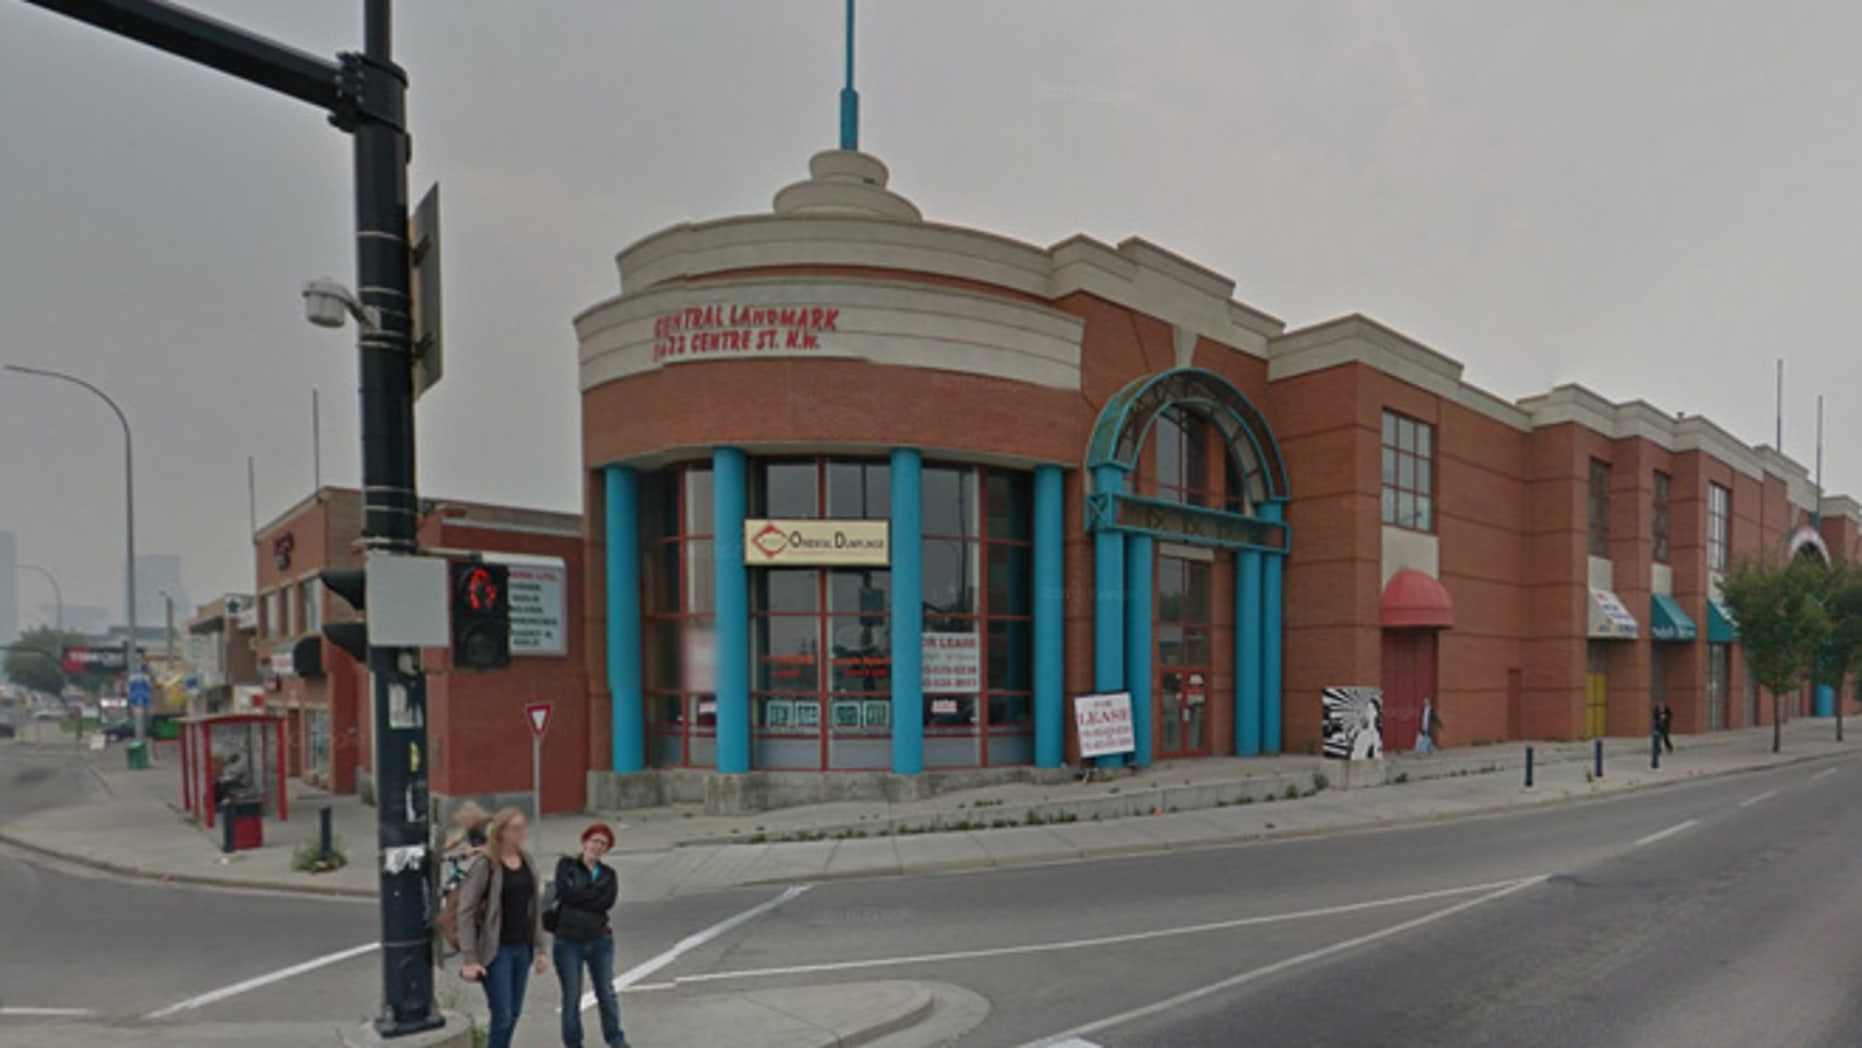 A stabbing took place Thursday at a medical clinic in the Central Landmark building in northwest Calgary, Canada.